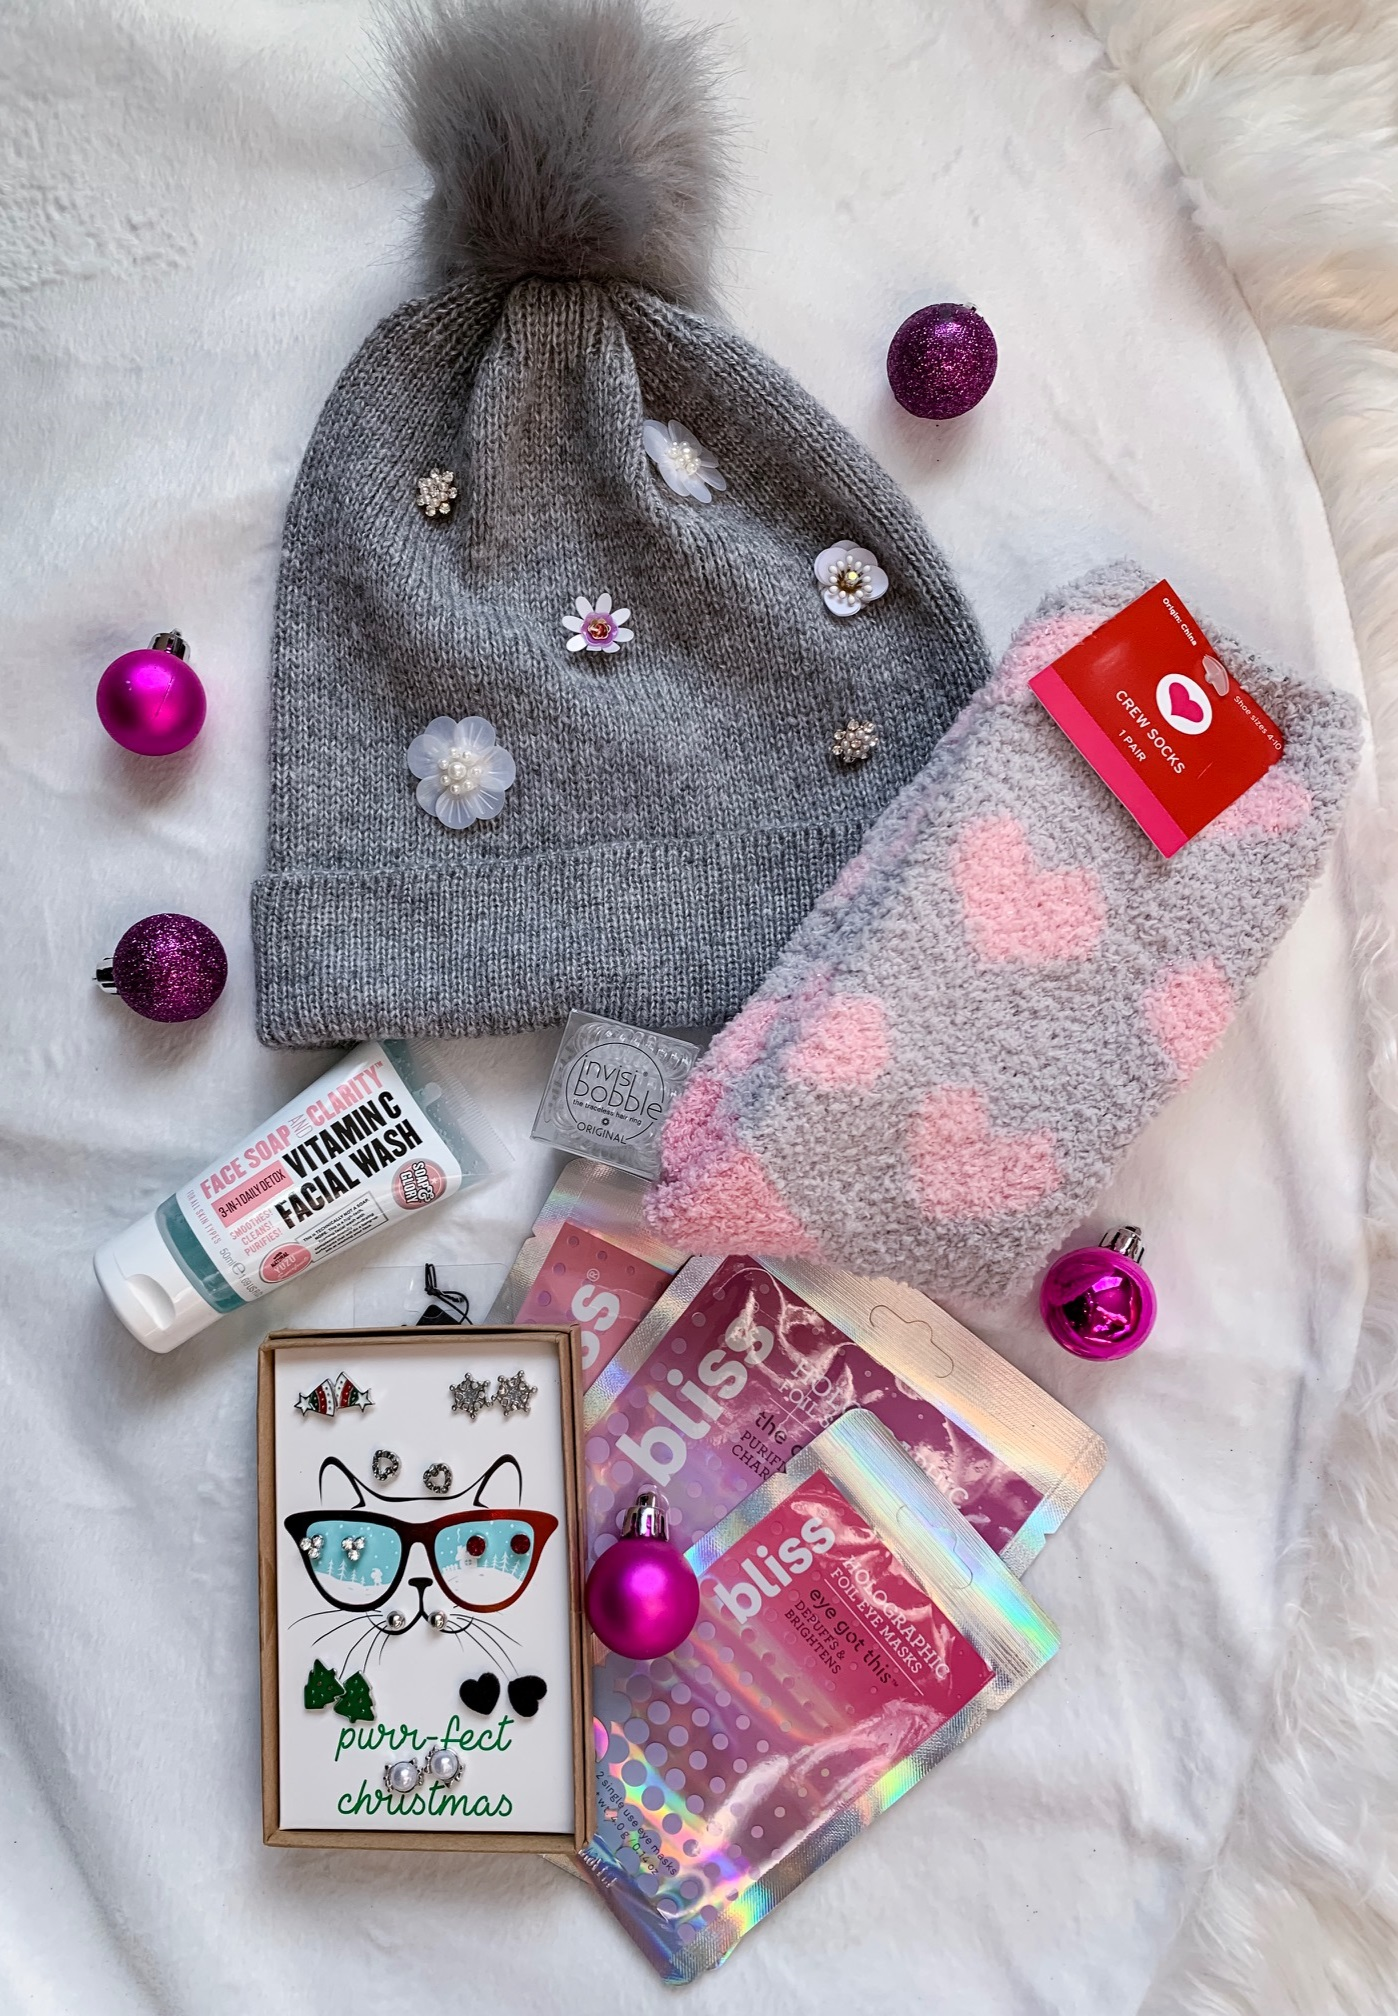 Stocking Stuffers from Target